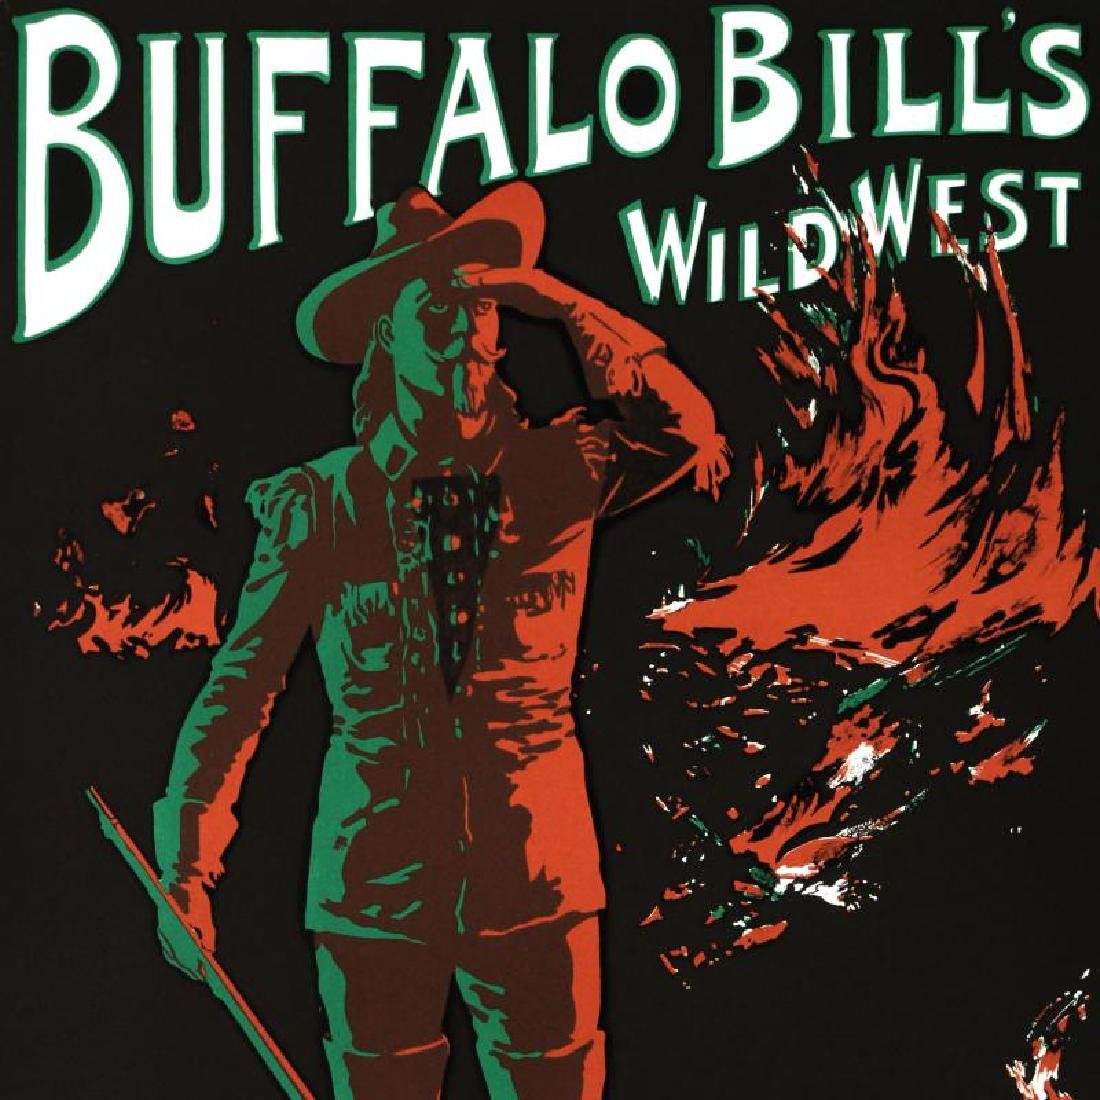 """Buffalo Bills Wild West"" Hand Pulled Lithograph by the - 2"